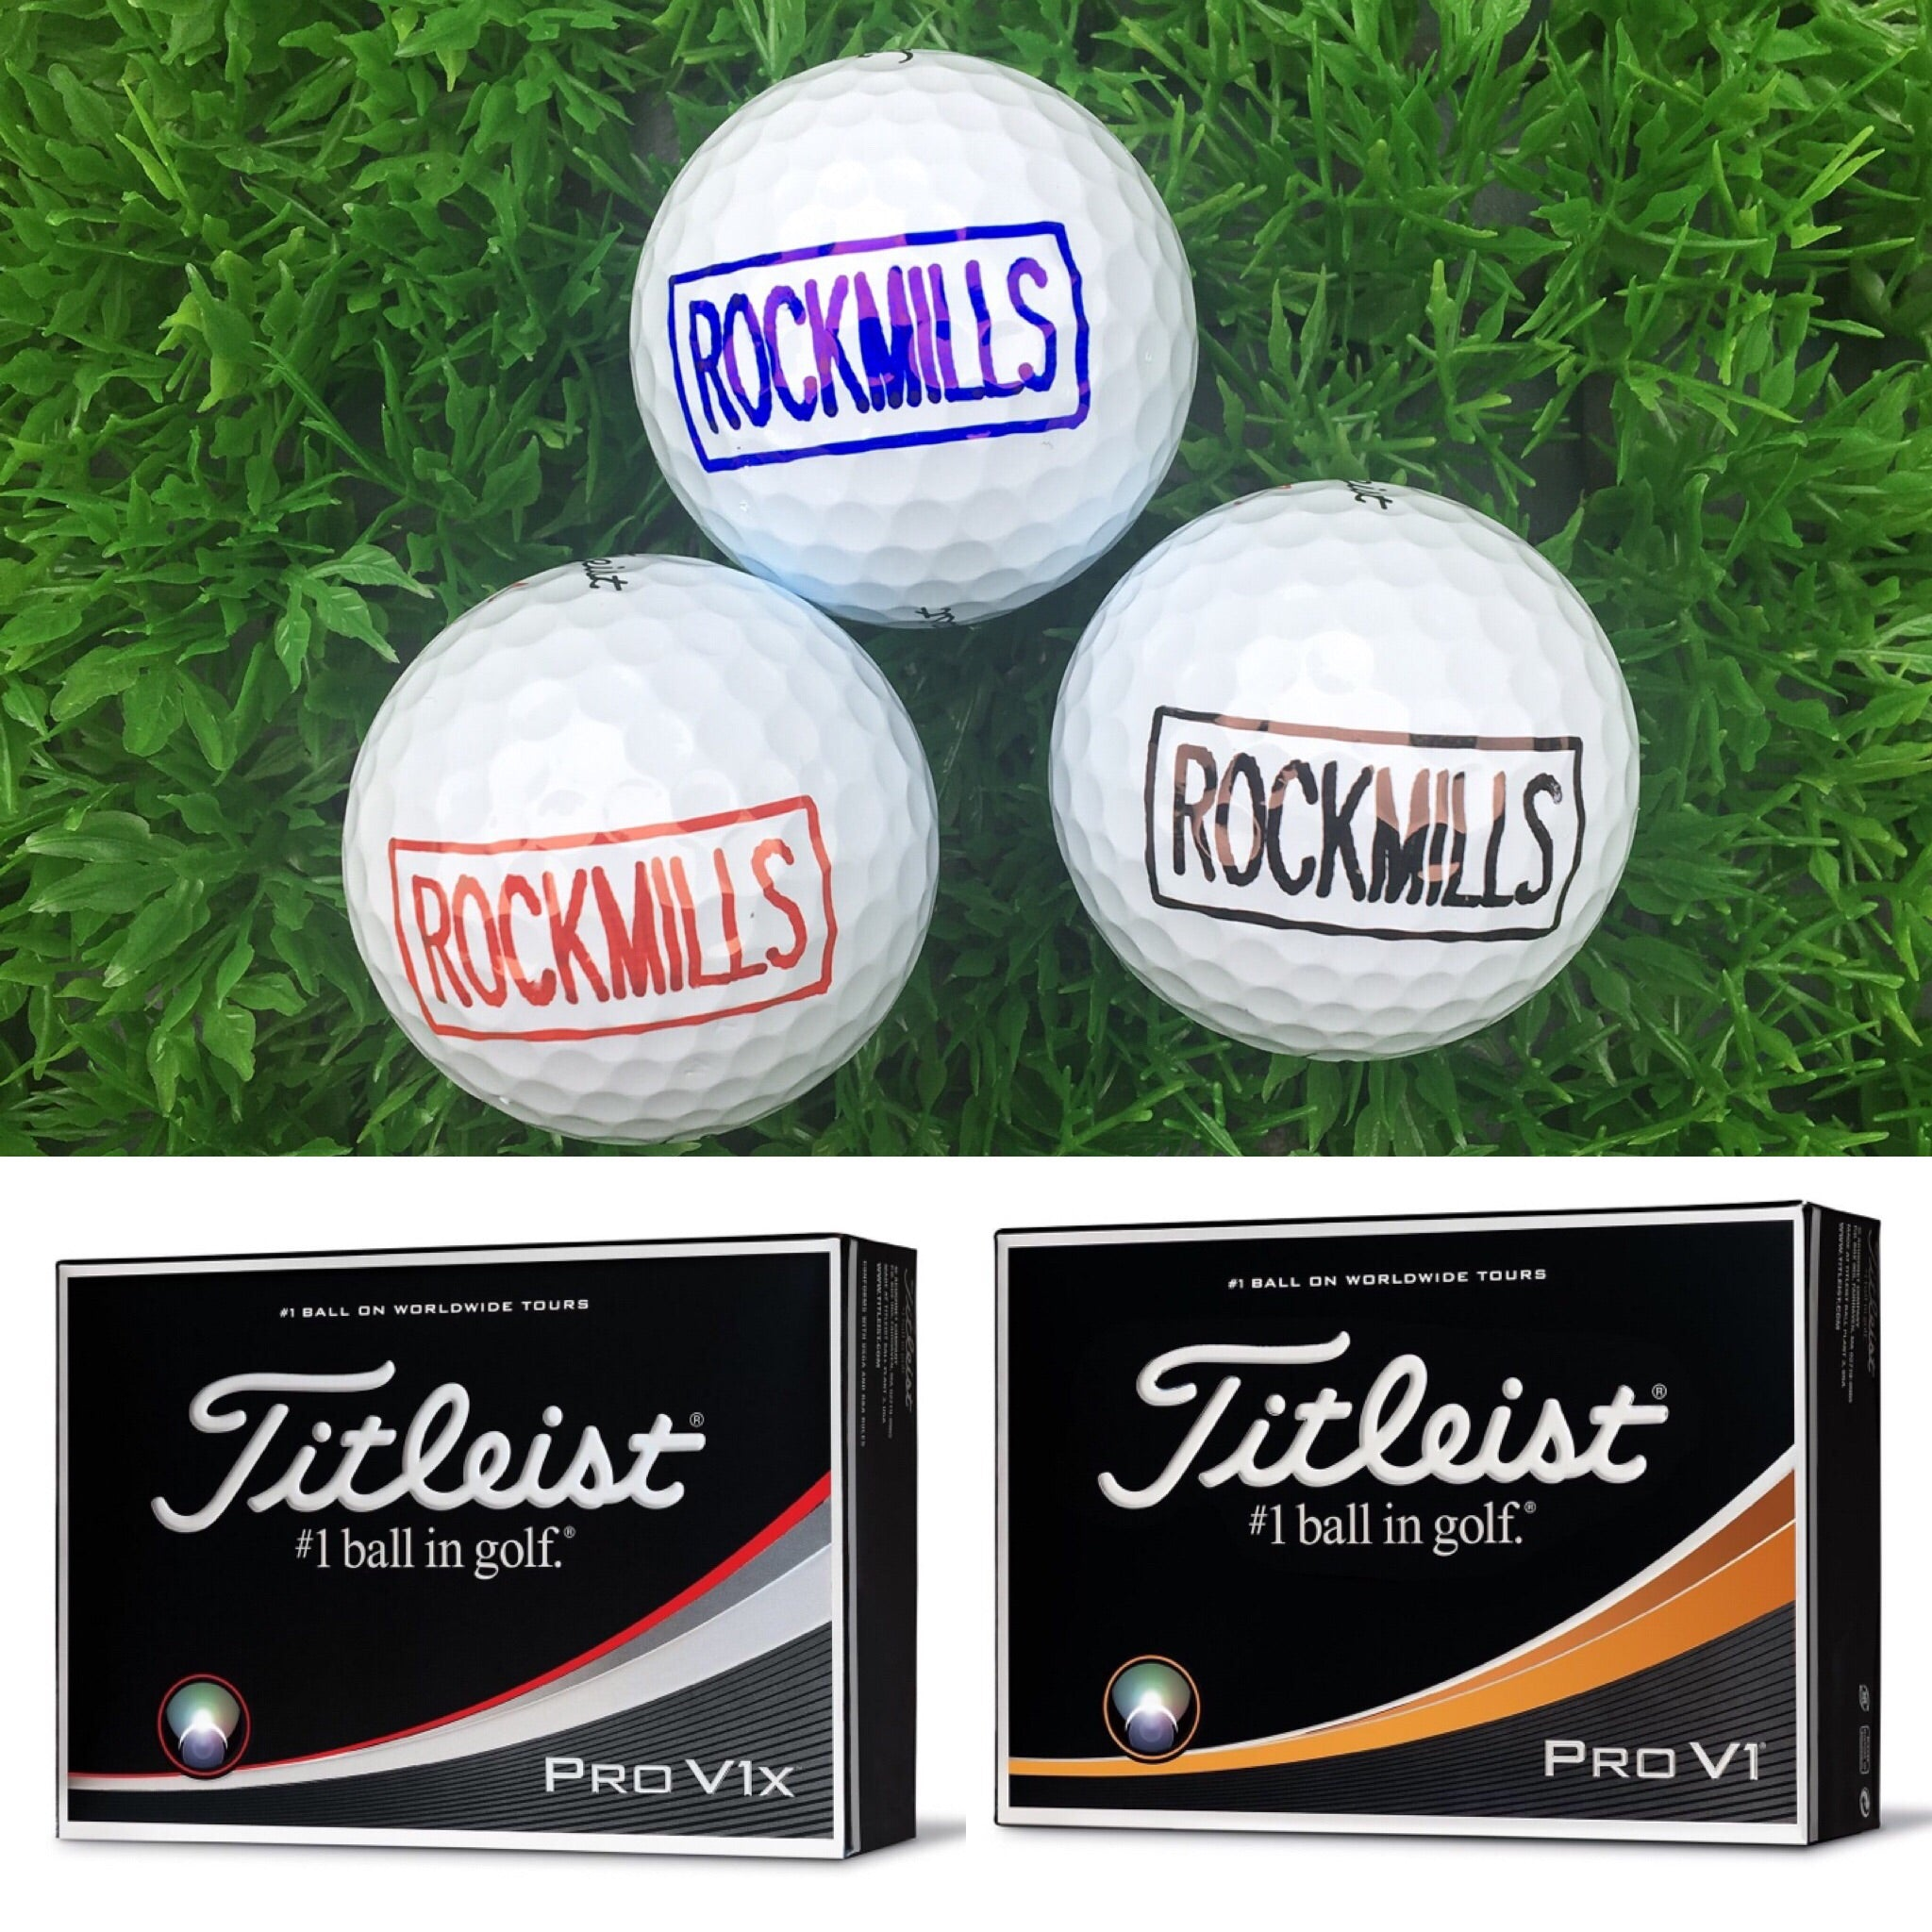 Previous Generation Titleist Prov1x (12 Pack)